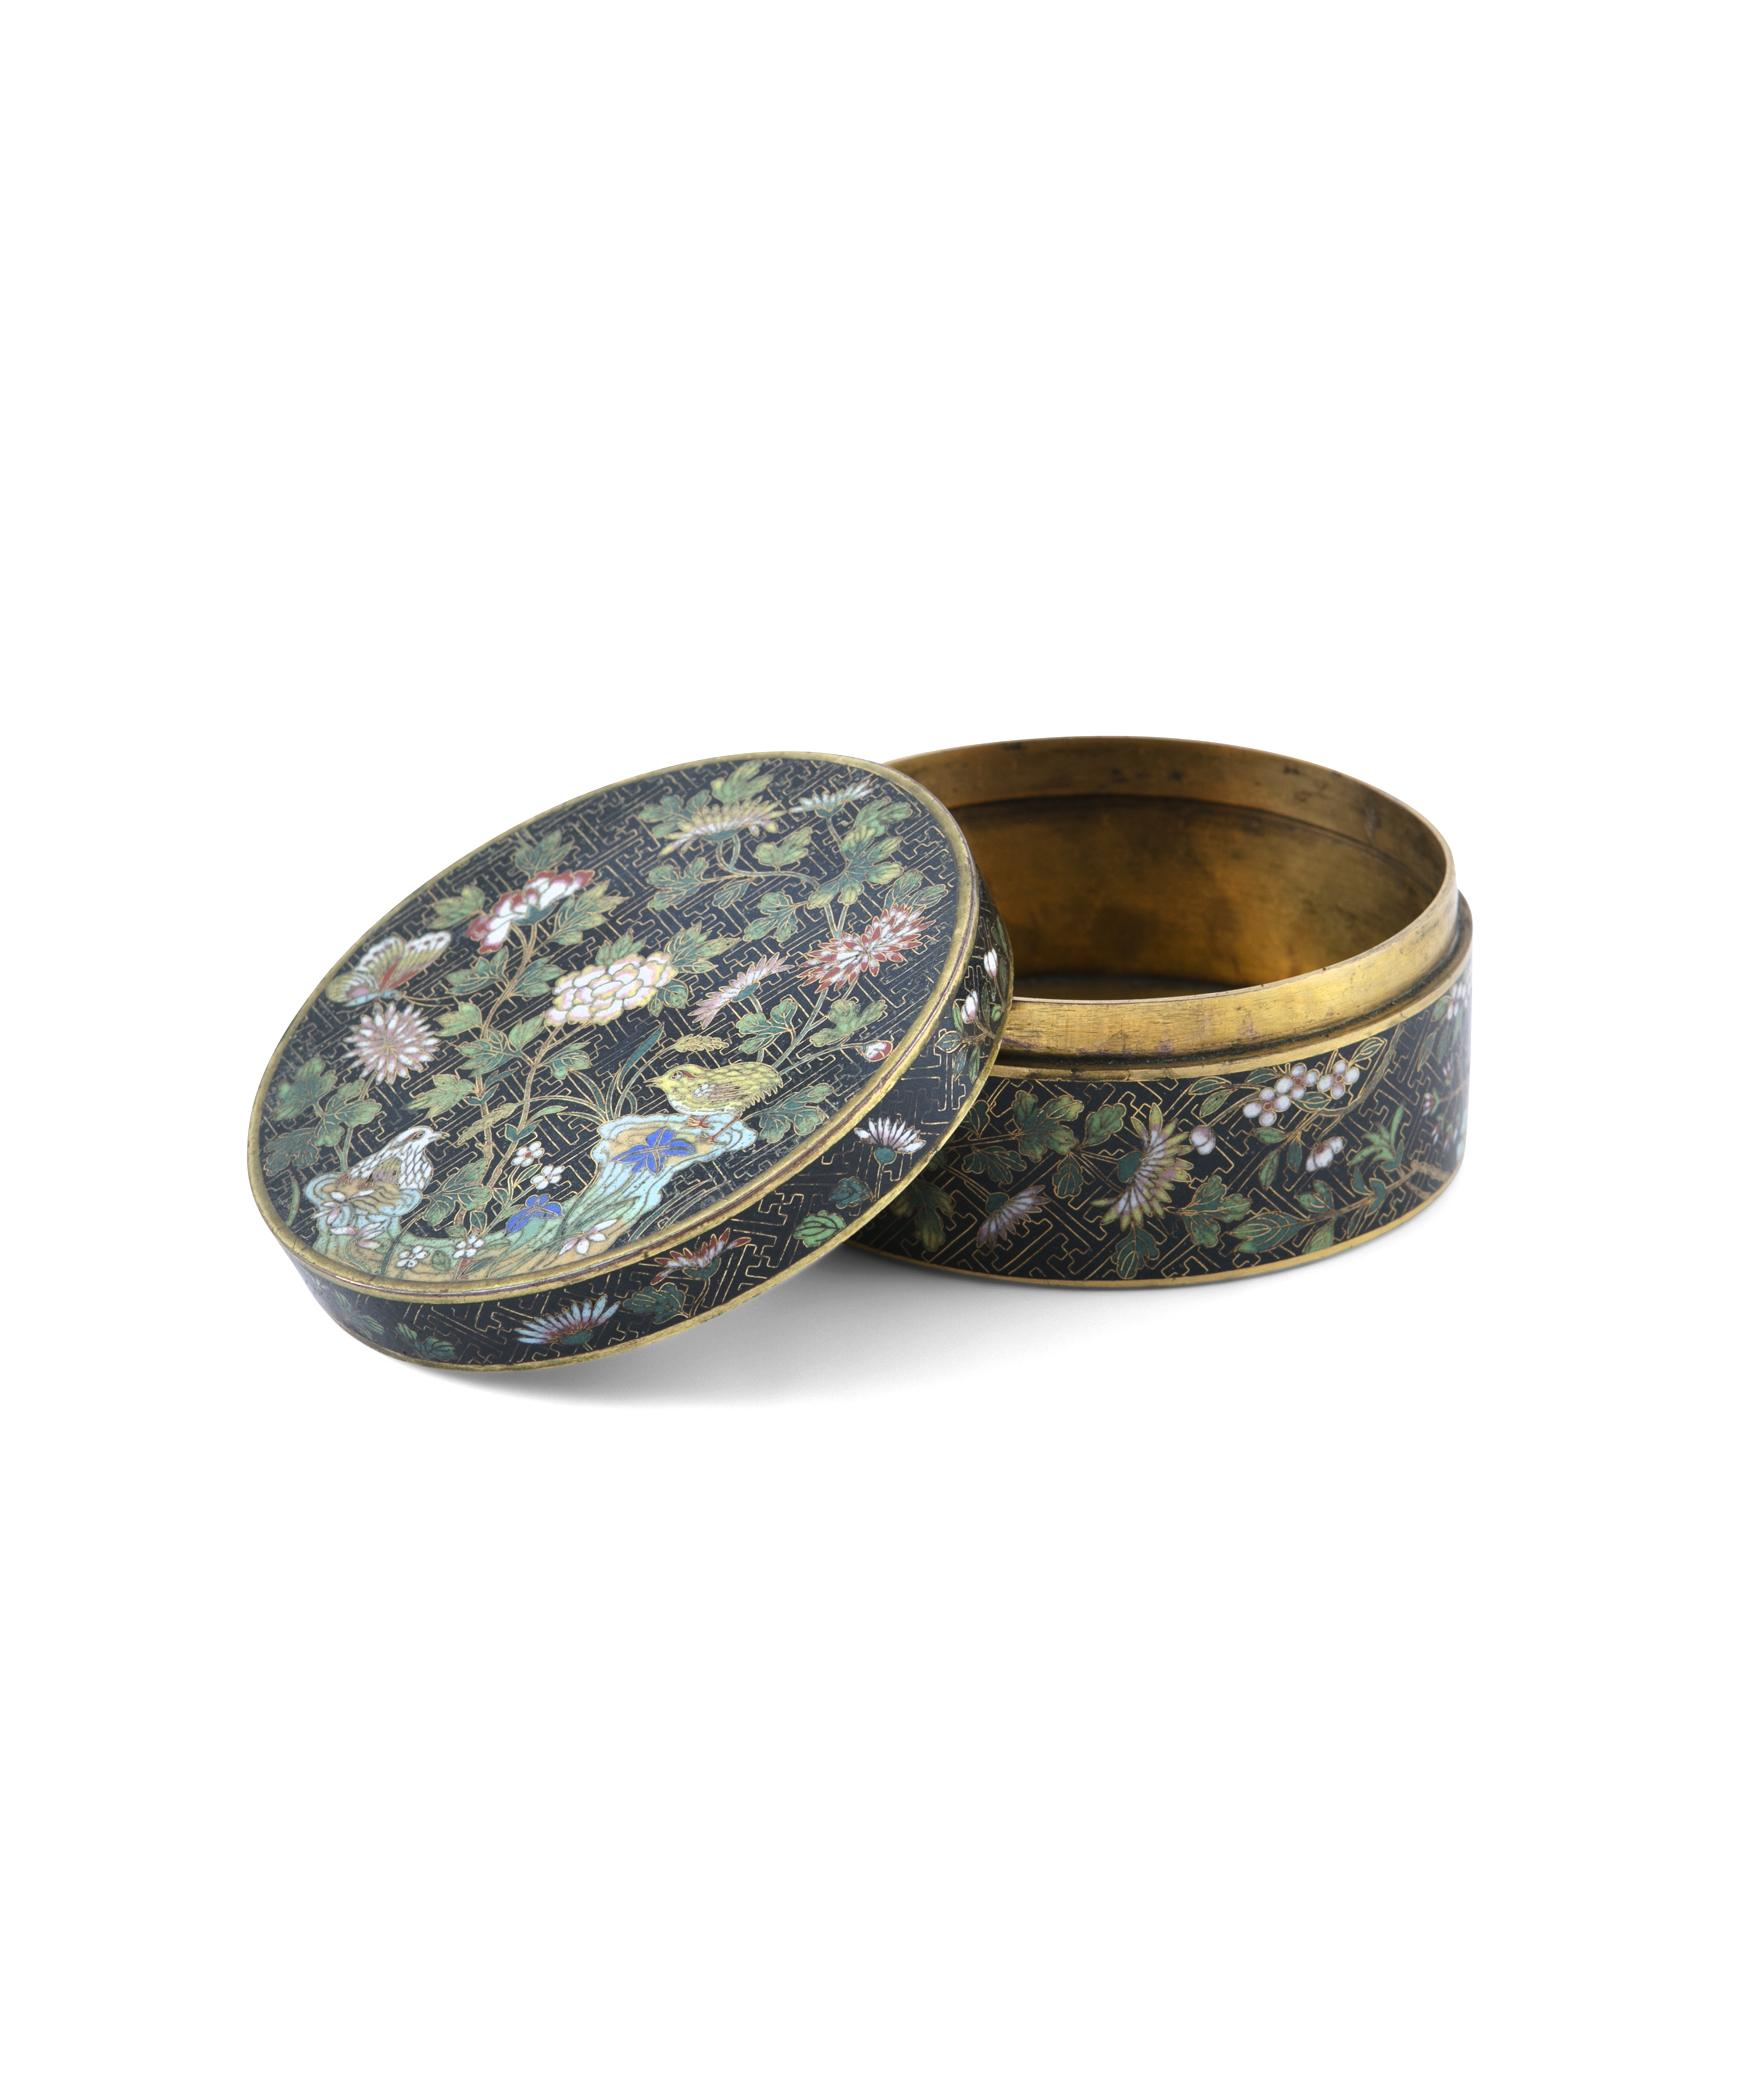 A 'FLOWER AND ROCKS' ROUND CLOISONNE BOX AND COVER China, Late Qing to Republican / Minguo period - Image 32 of 36